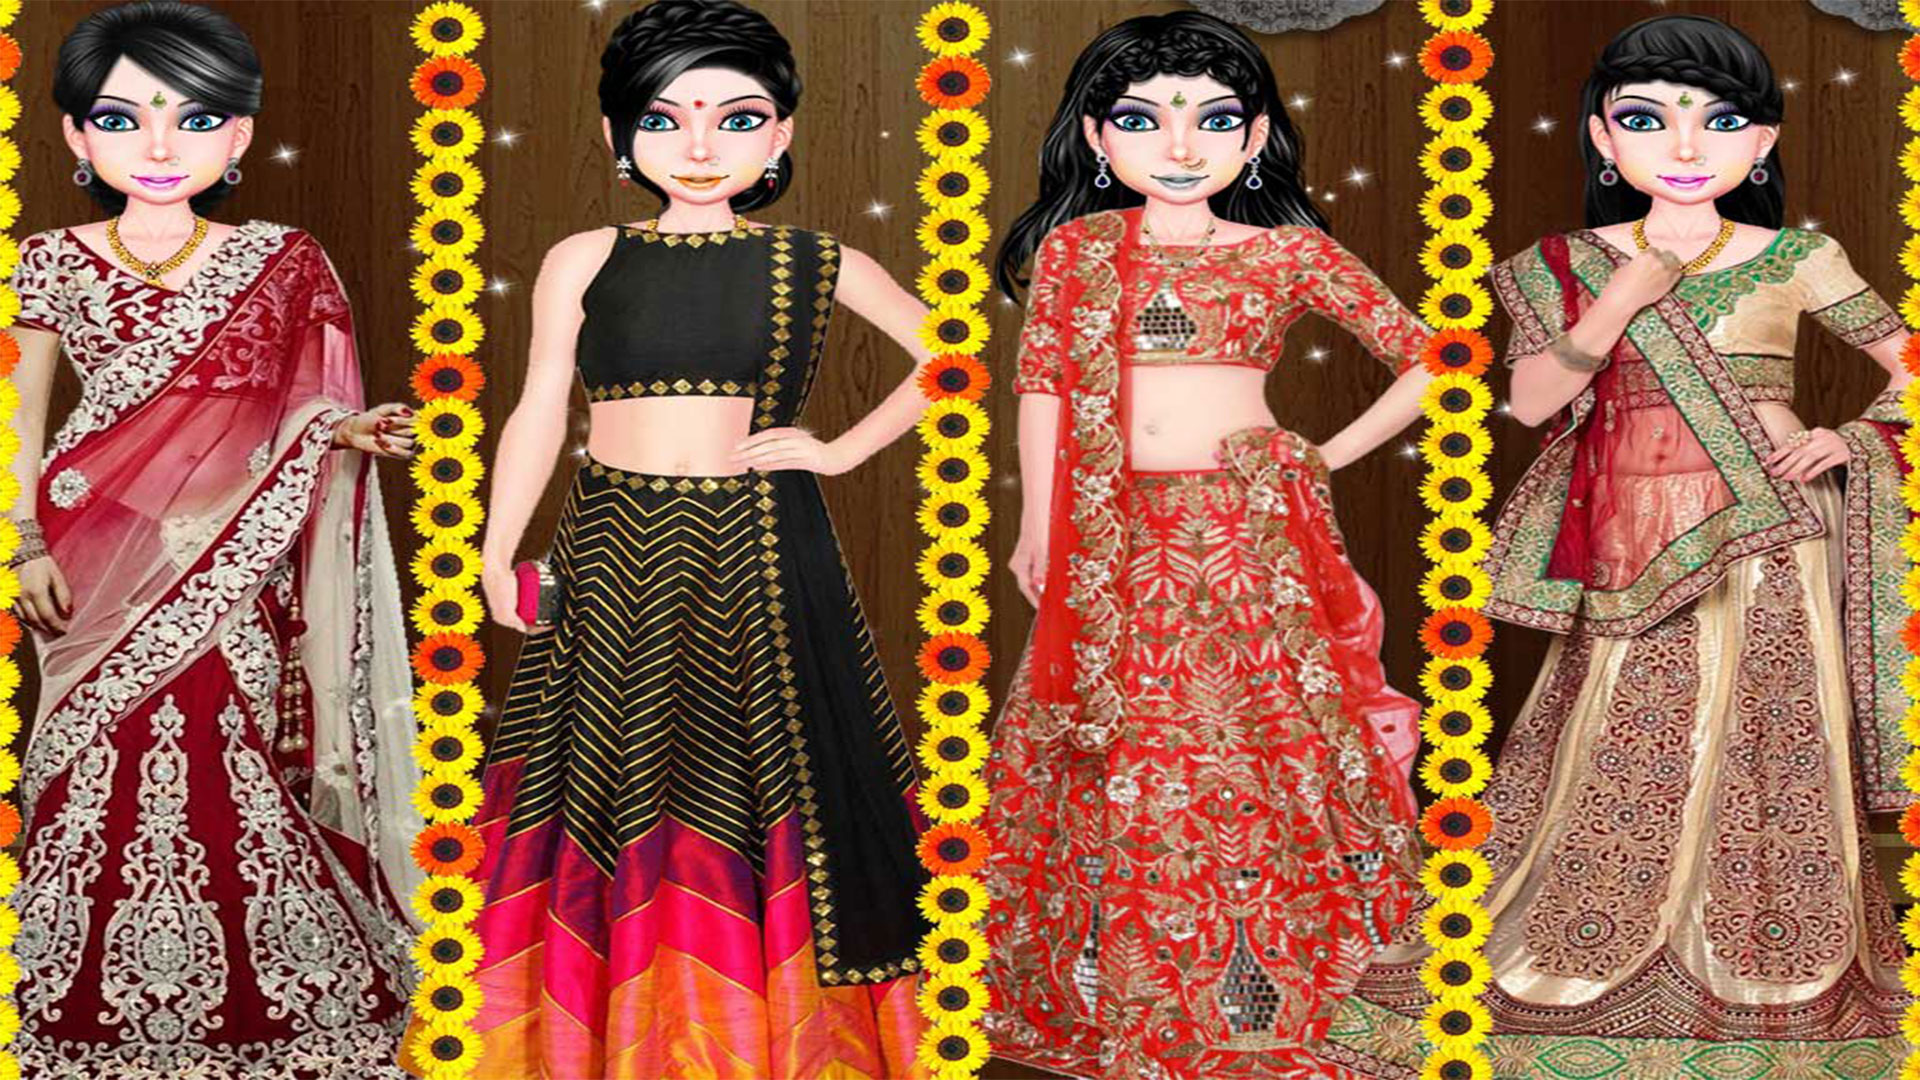 Amazon Com Indian Wedding Girl Fashion Salon Appstore For Android